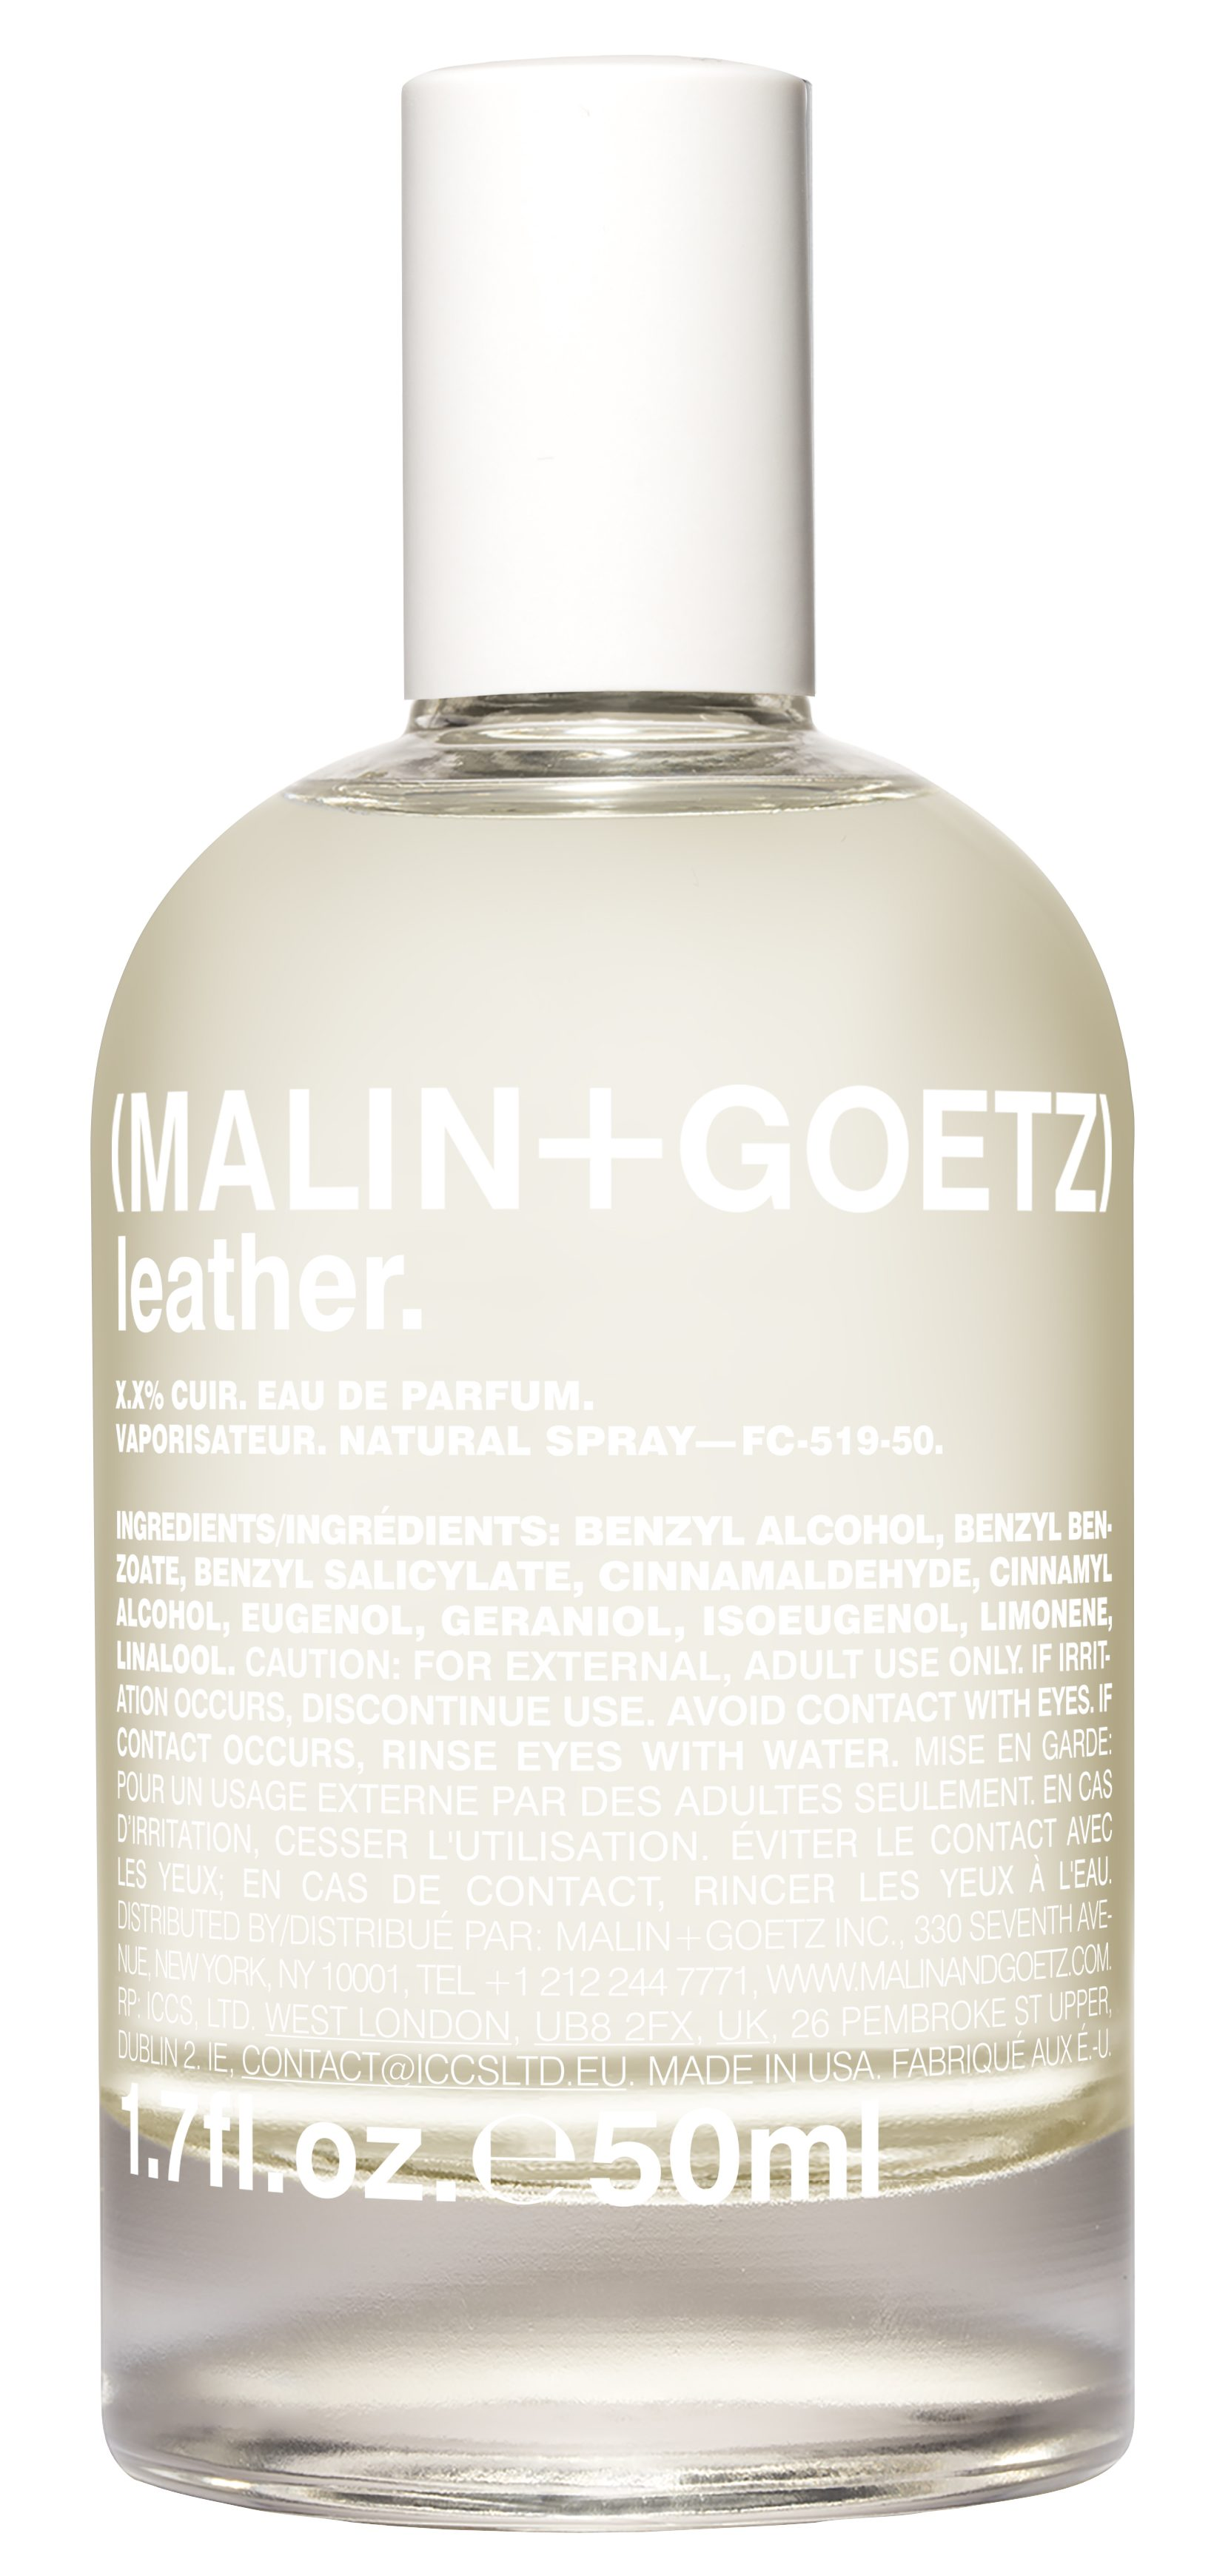 malin-goetz-eau-de-parfum-leather